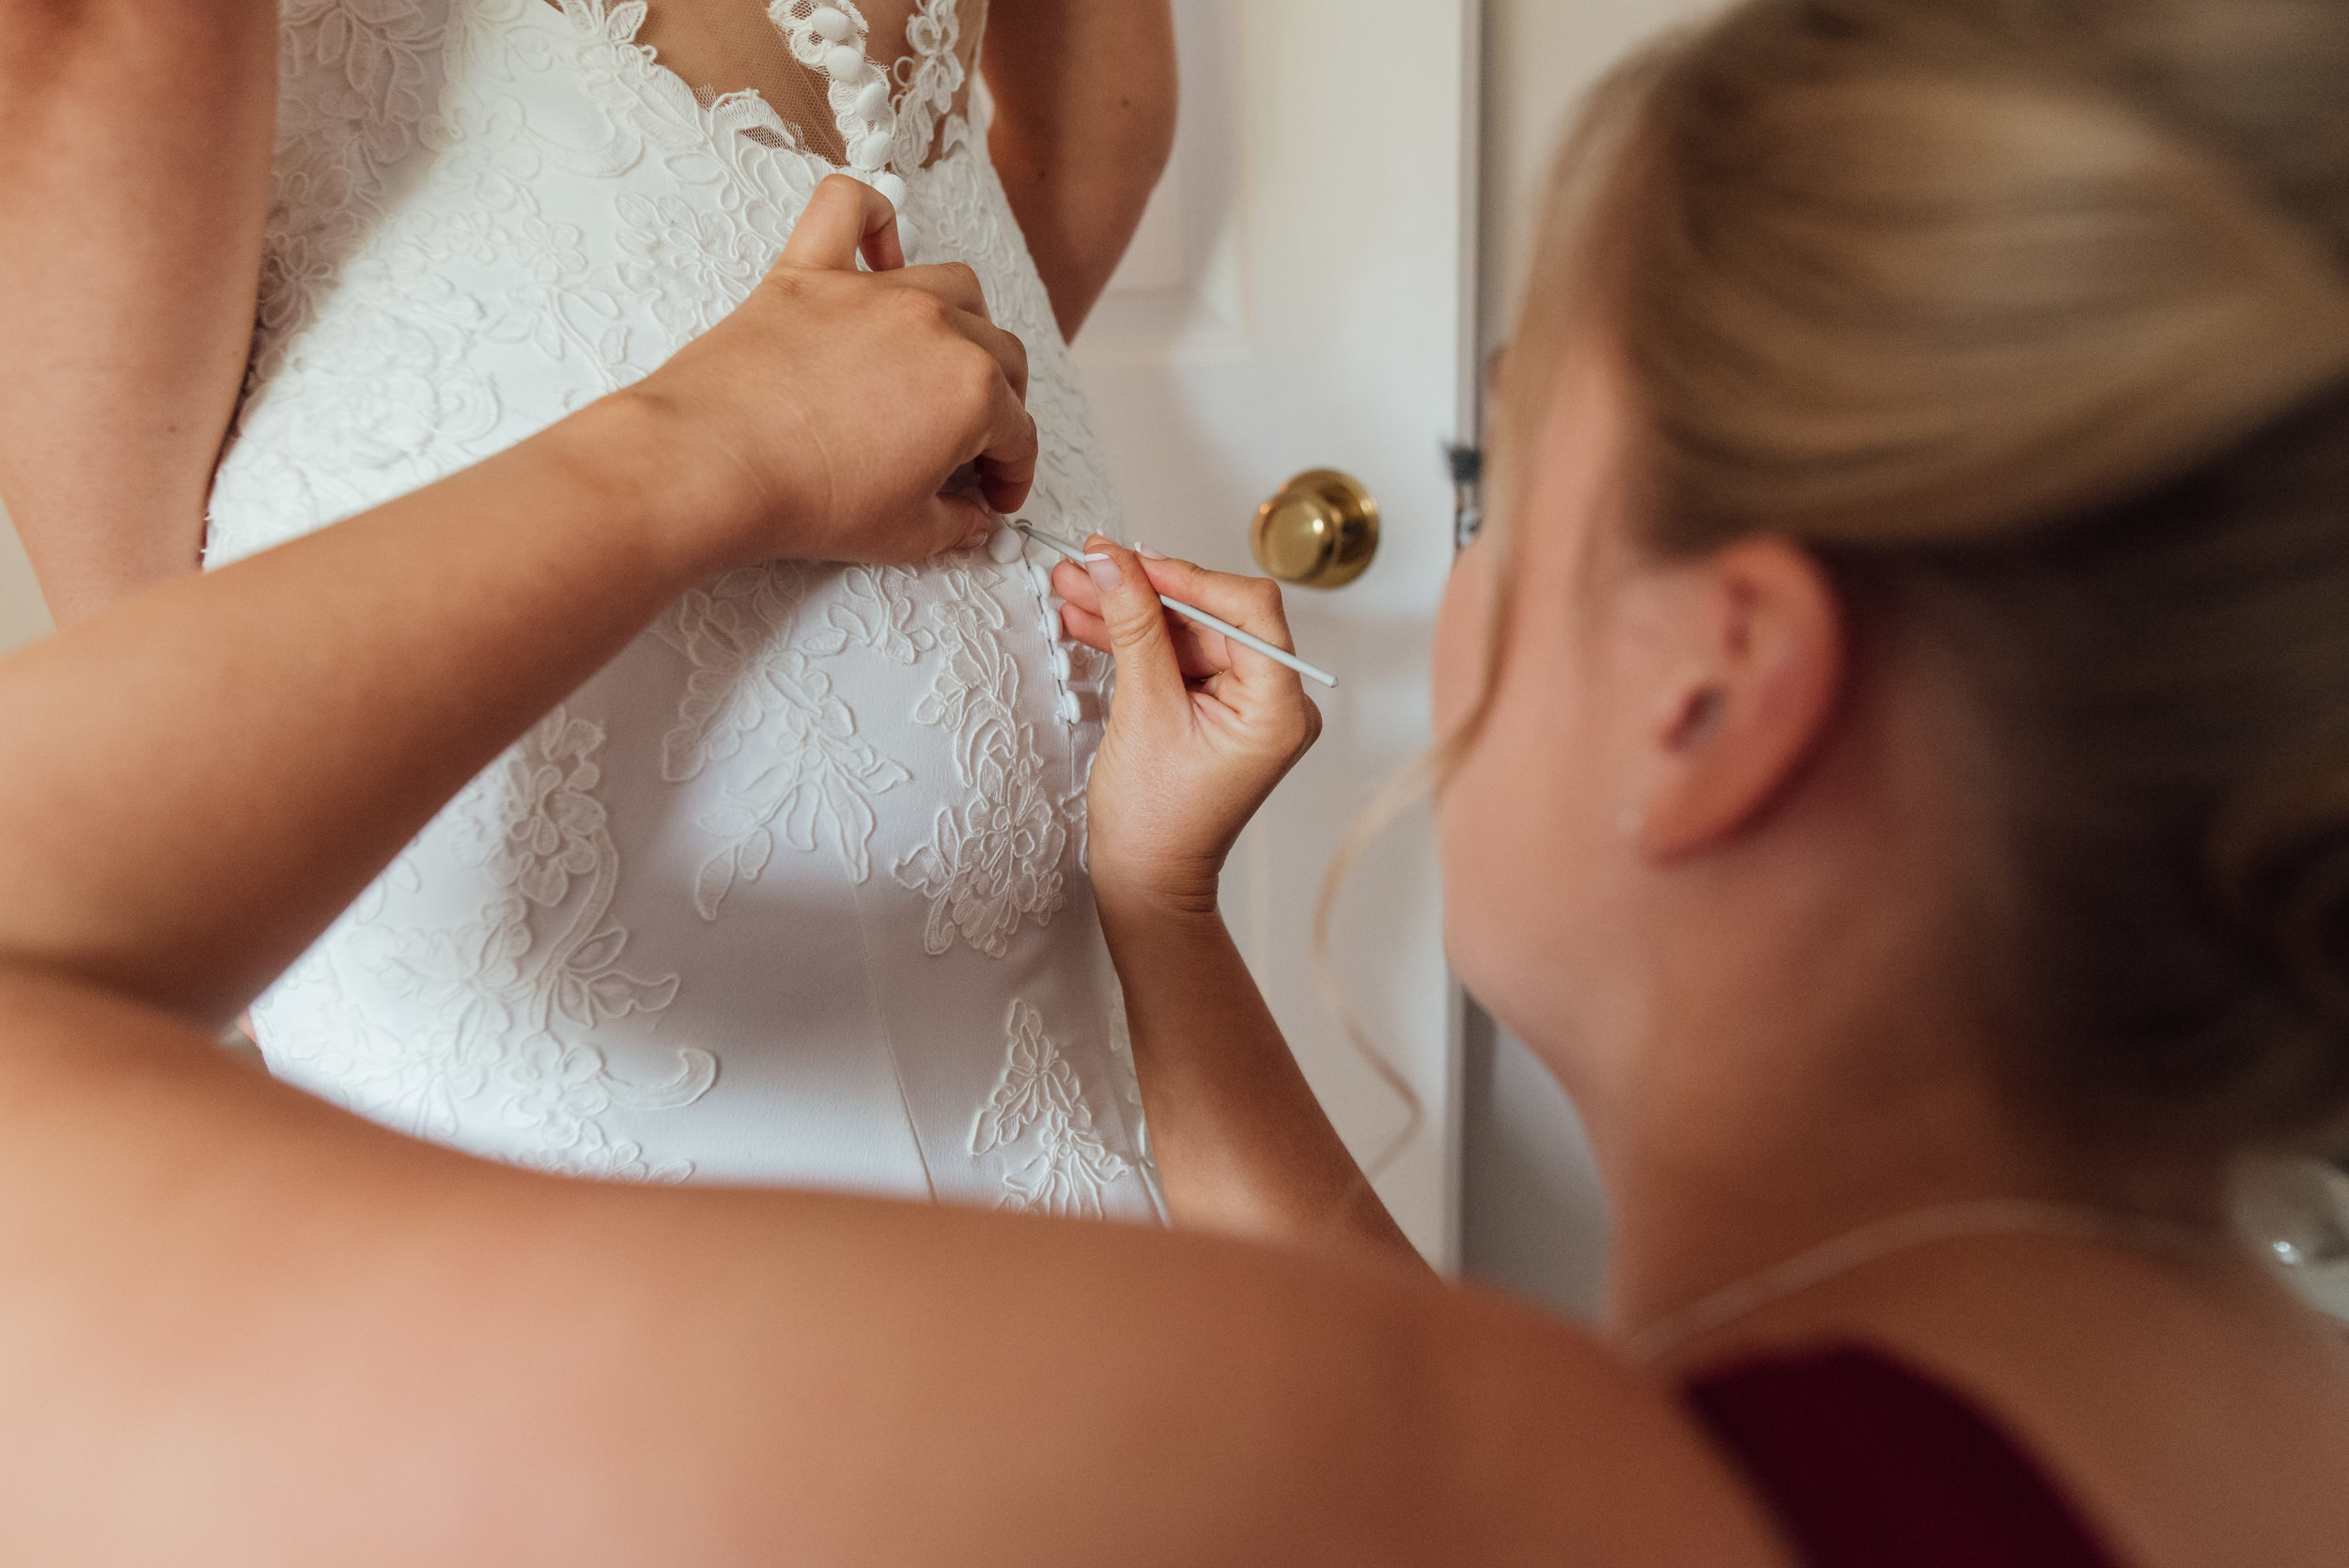 Bride-getting-int-wedding-dress-hampshire-wedding-photographer-amy-james-photography